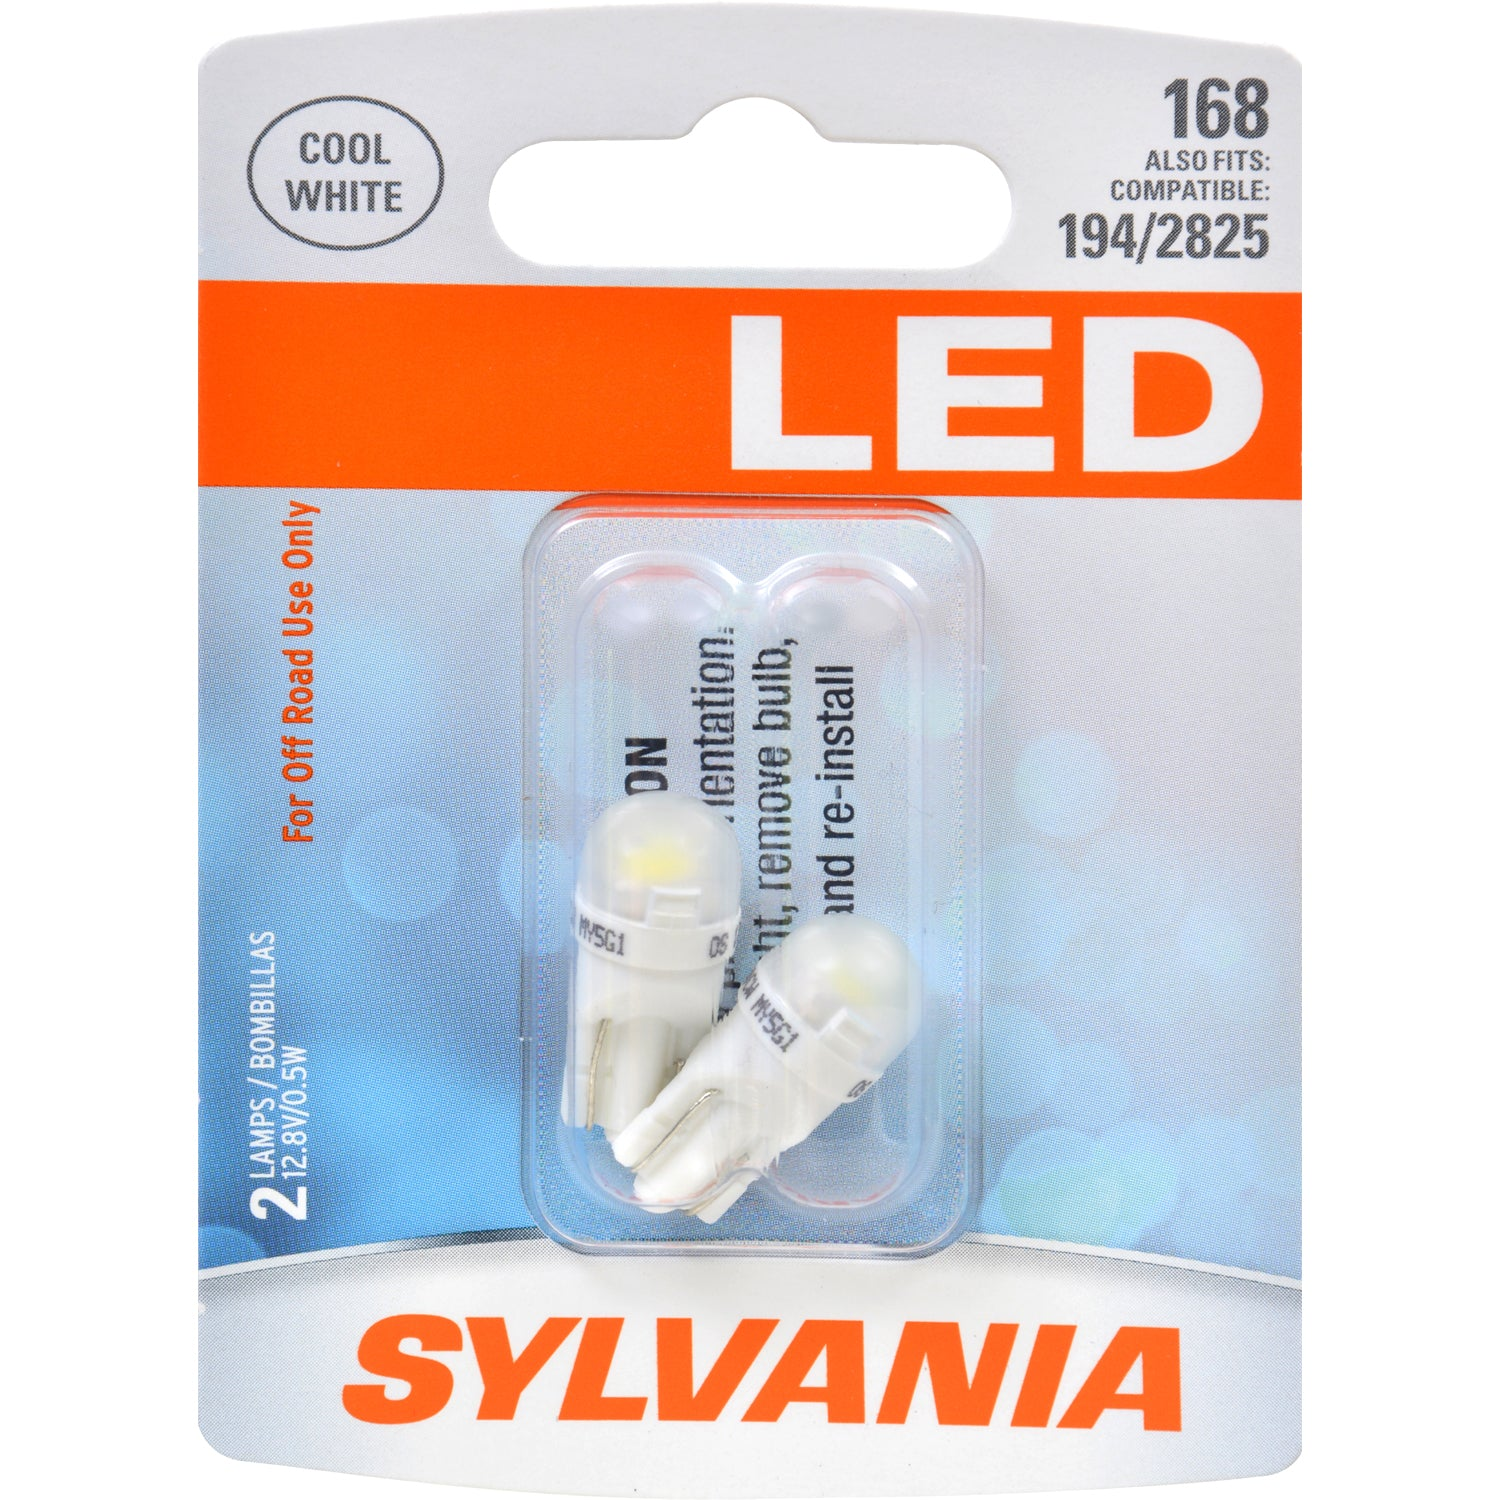 2-PK SYLVANIA LED 168 W5W 194 Cool White Automotive Bulb - also fits 194 & 2825